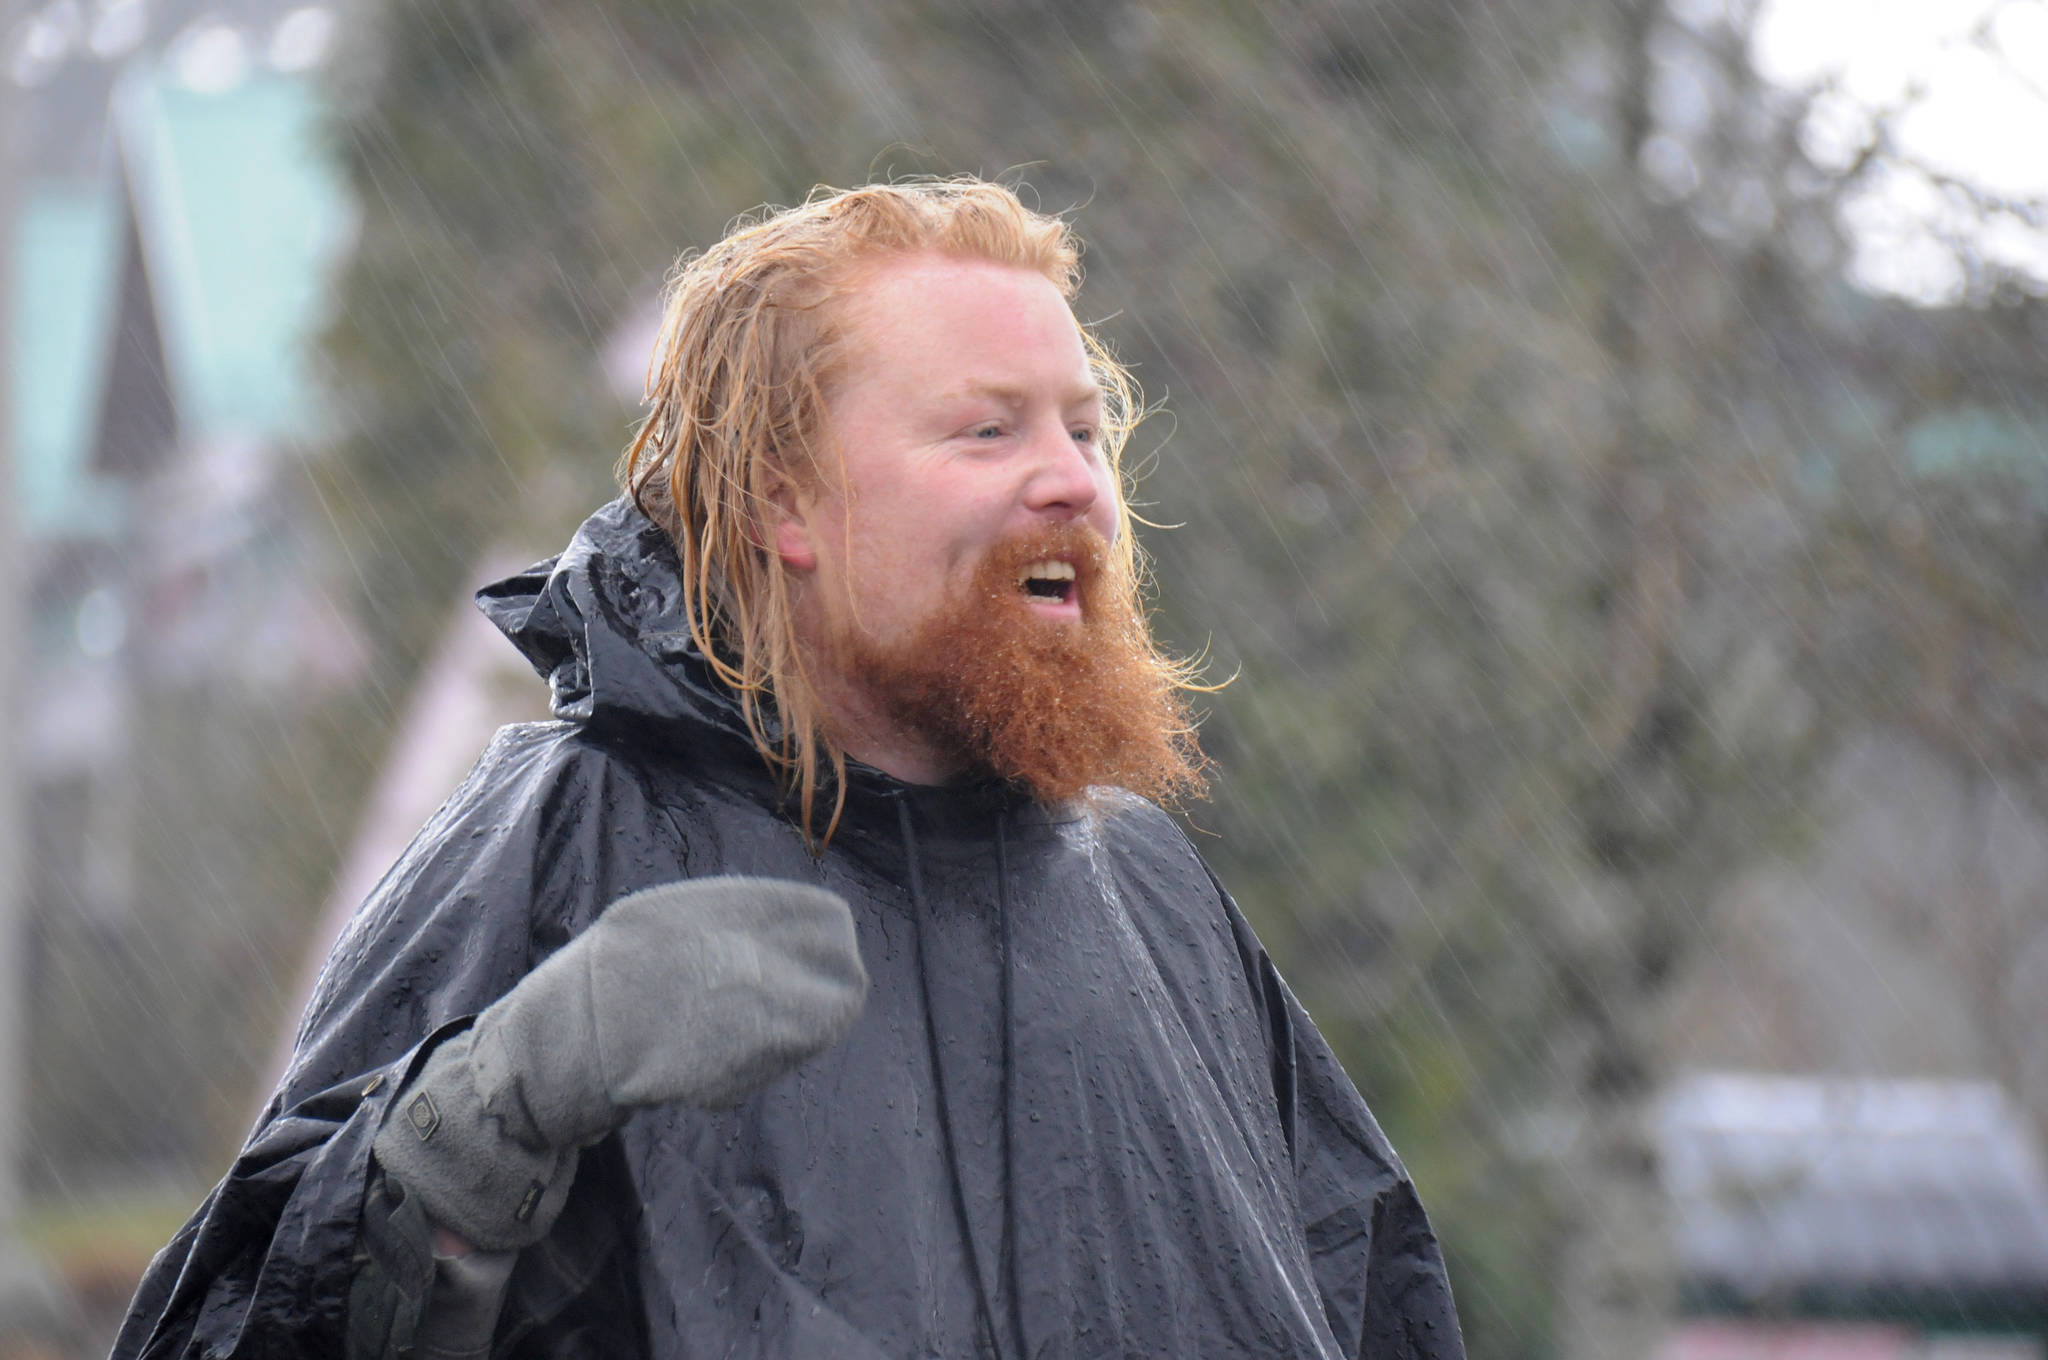 Michael Yellowlees of Dunkeld and Birnam, Scotland, arrives in Port Alberni during a typical southeaster storm, Friday, March 5, 2021. Yellowlees and his husky dog Luna will be walking across Canada to raise funds for Trees for Life, a Scottish charity. (SUSAN QUINN/ Alberni Valley News)